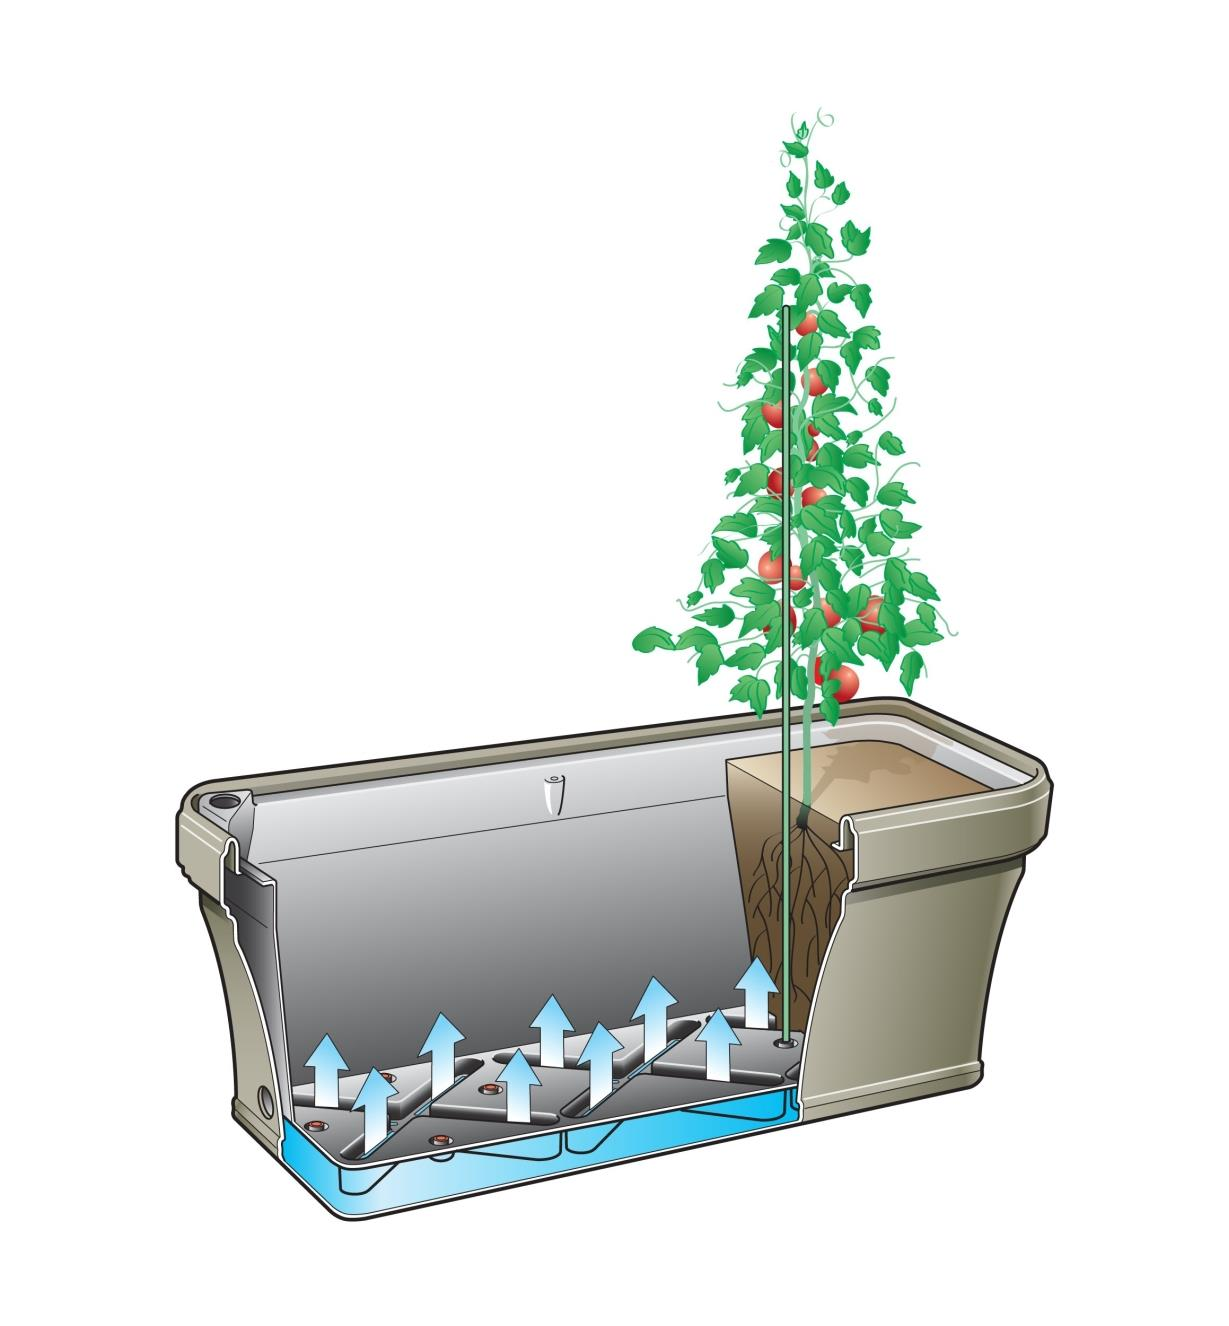 Cutaway illustration shows how water wicks from the reservoir into the soil